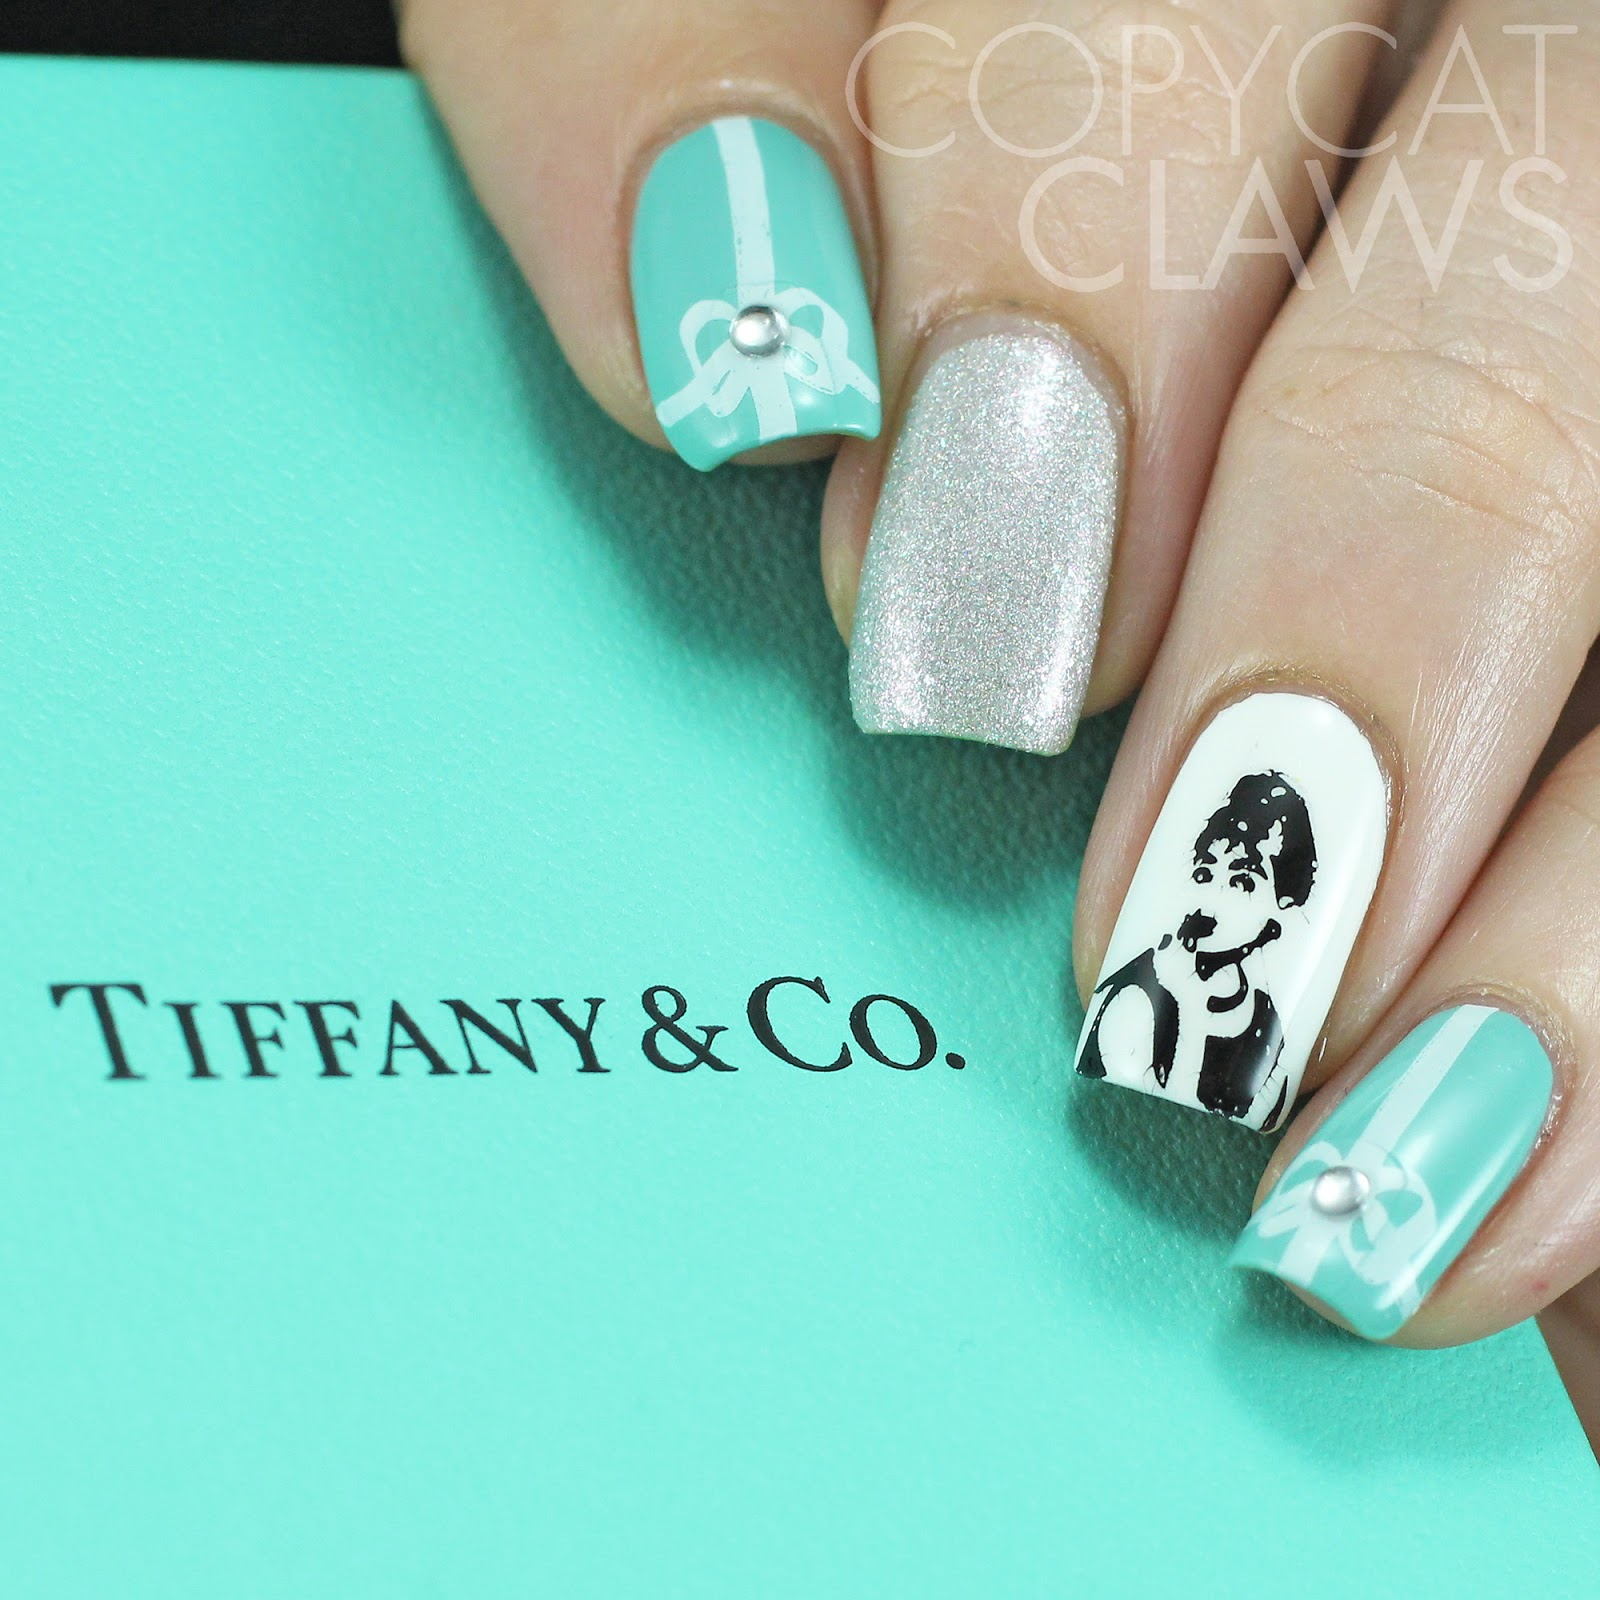 Copycat Claws: Sunday Stamping